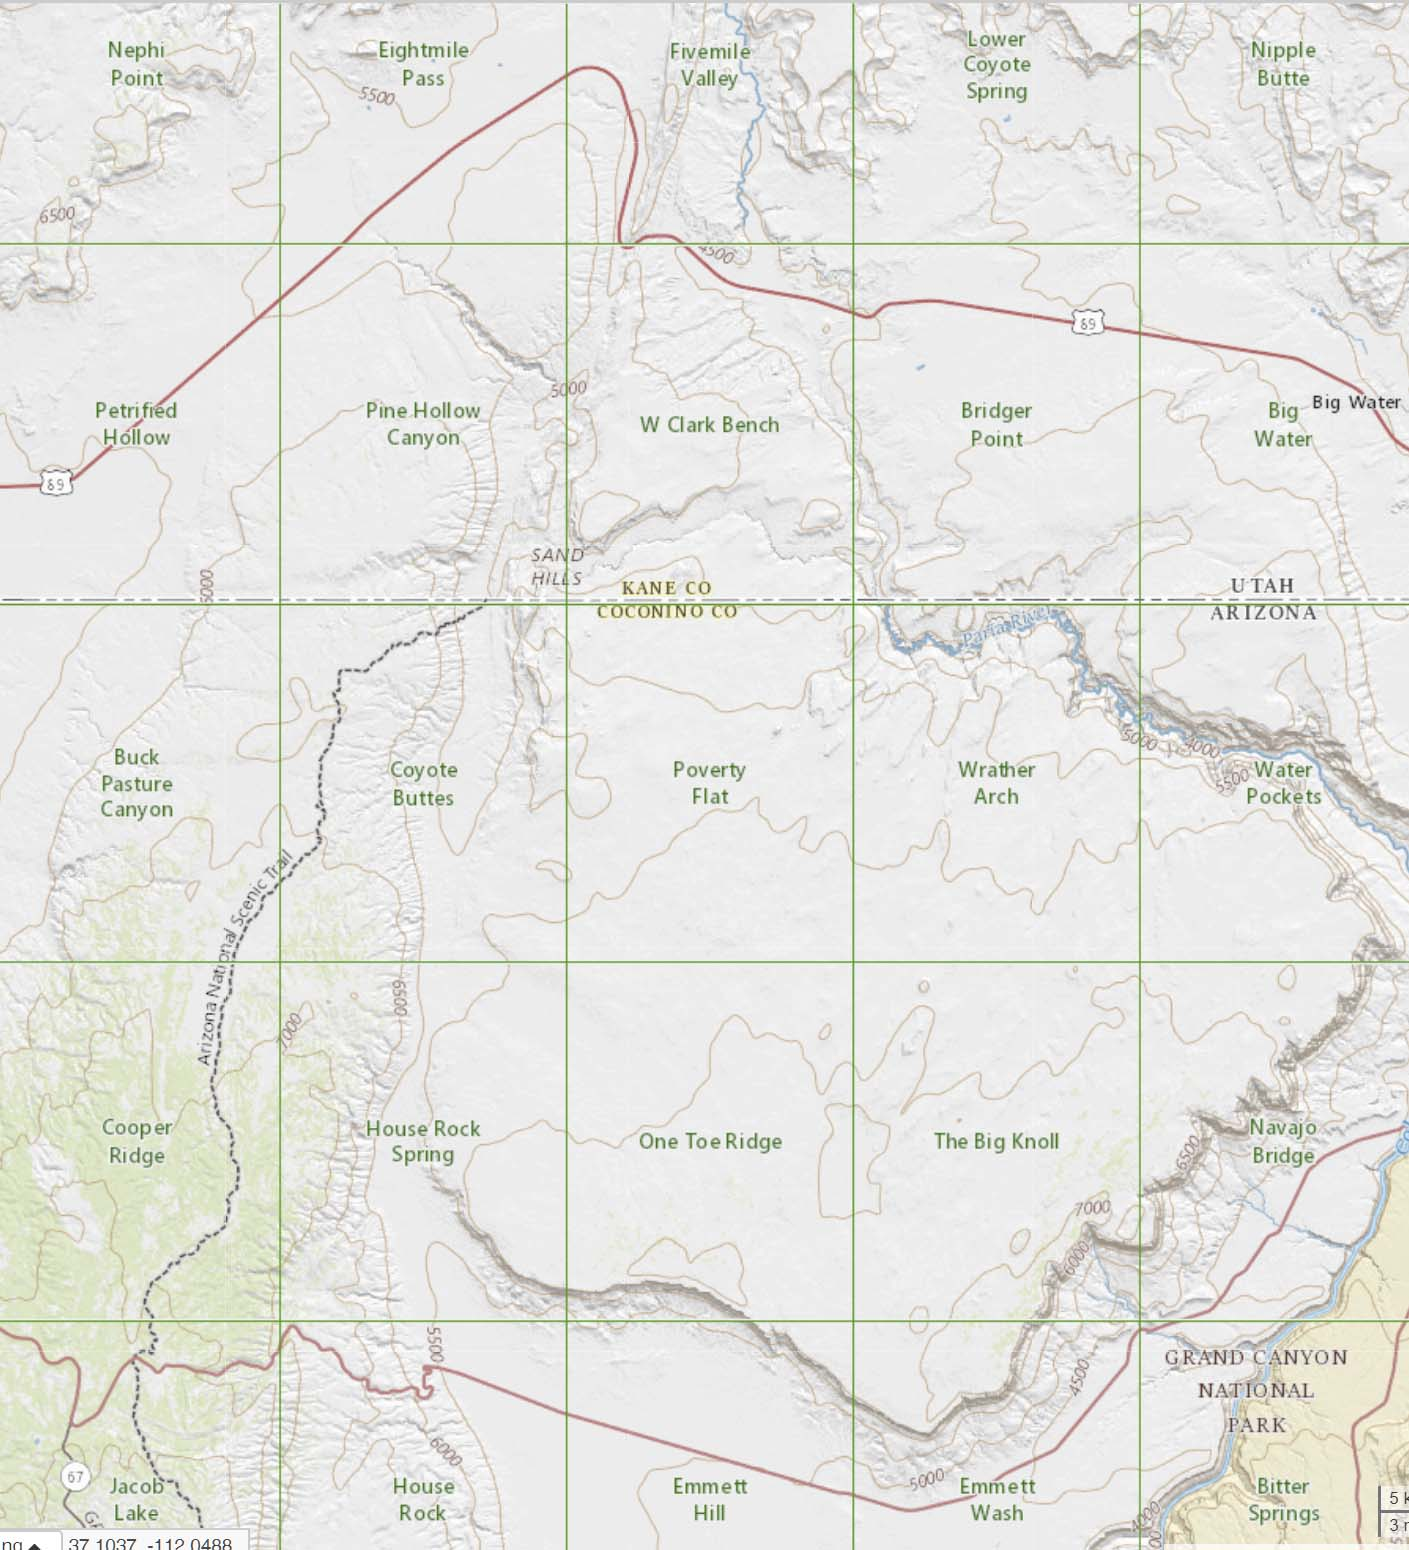 Topo maps covering Vermilion Cliffs National Monument